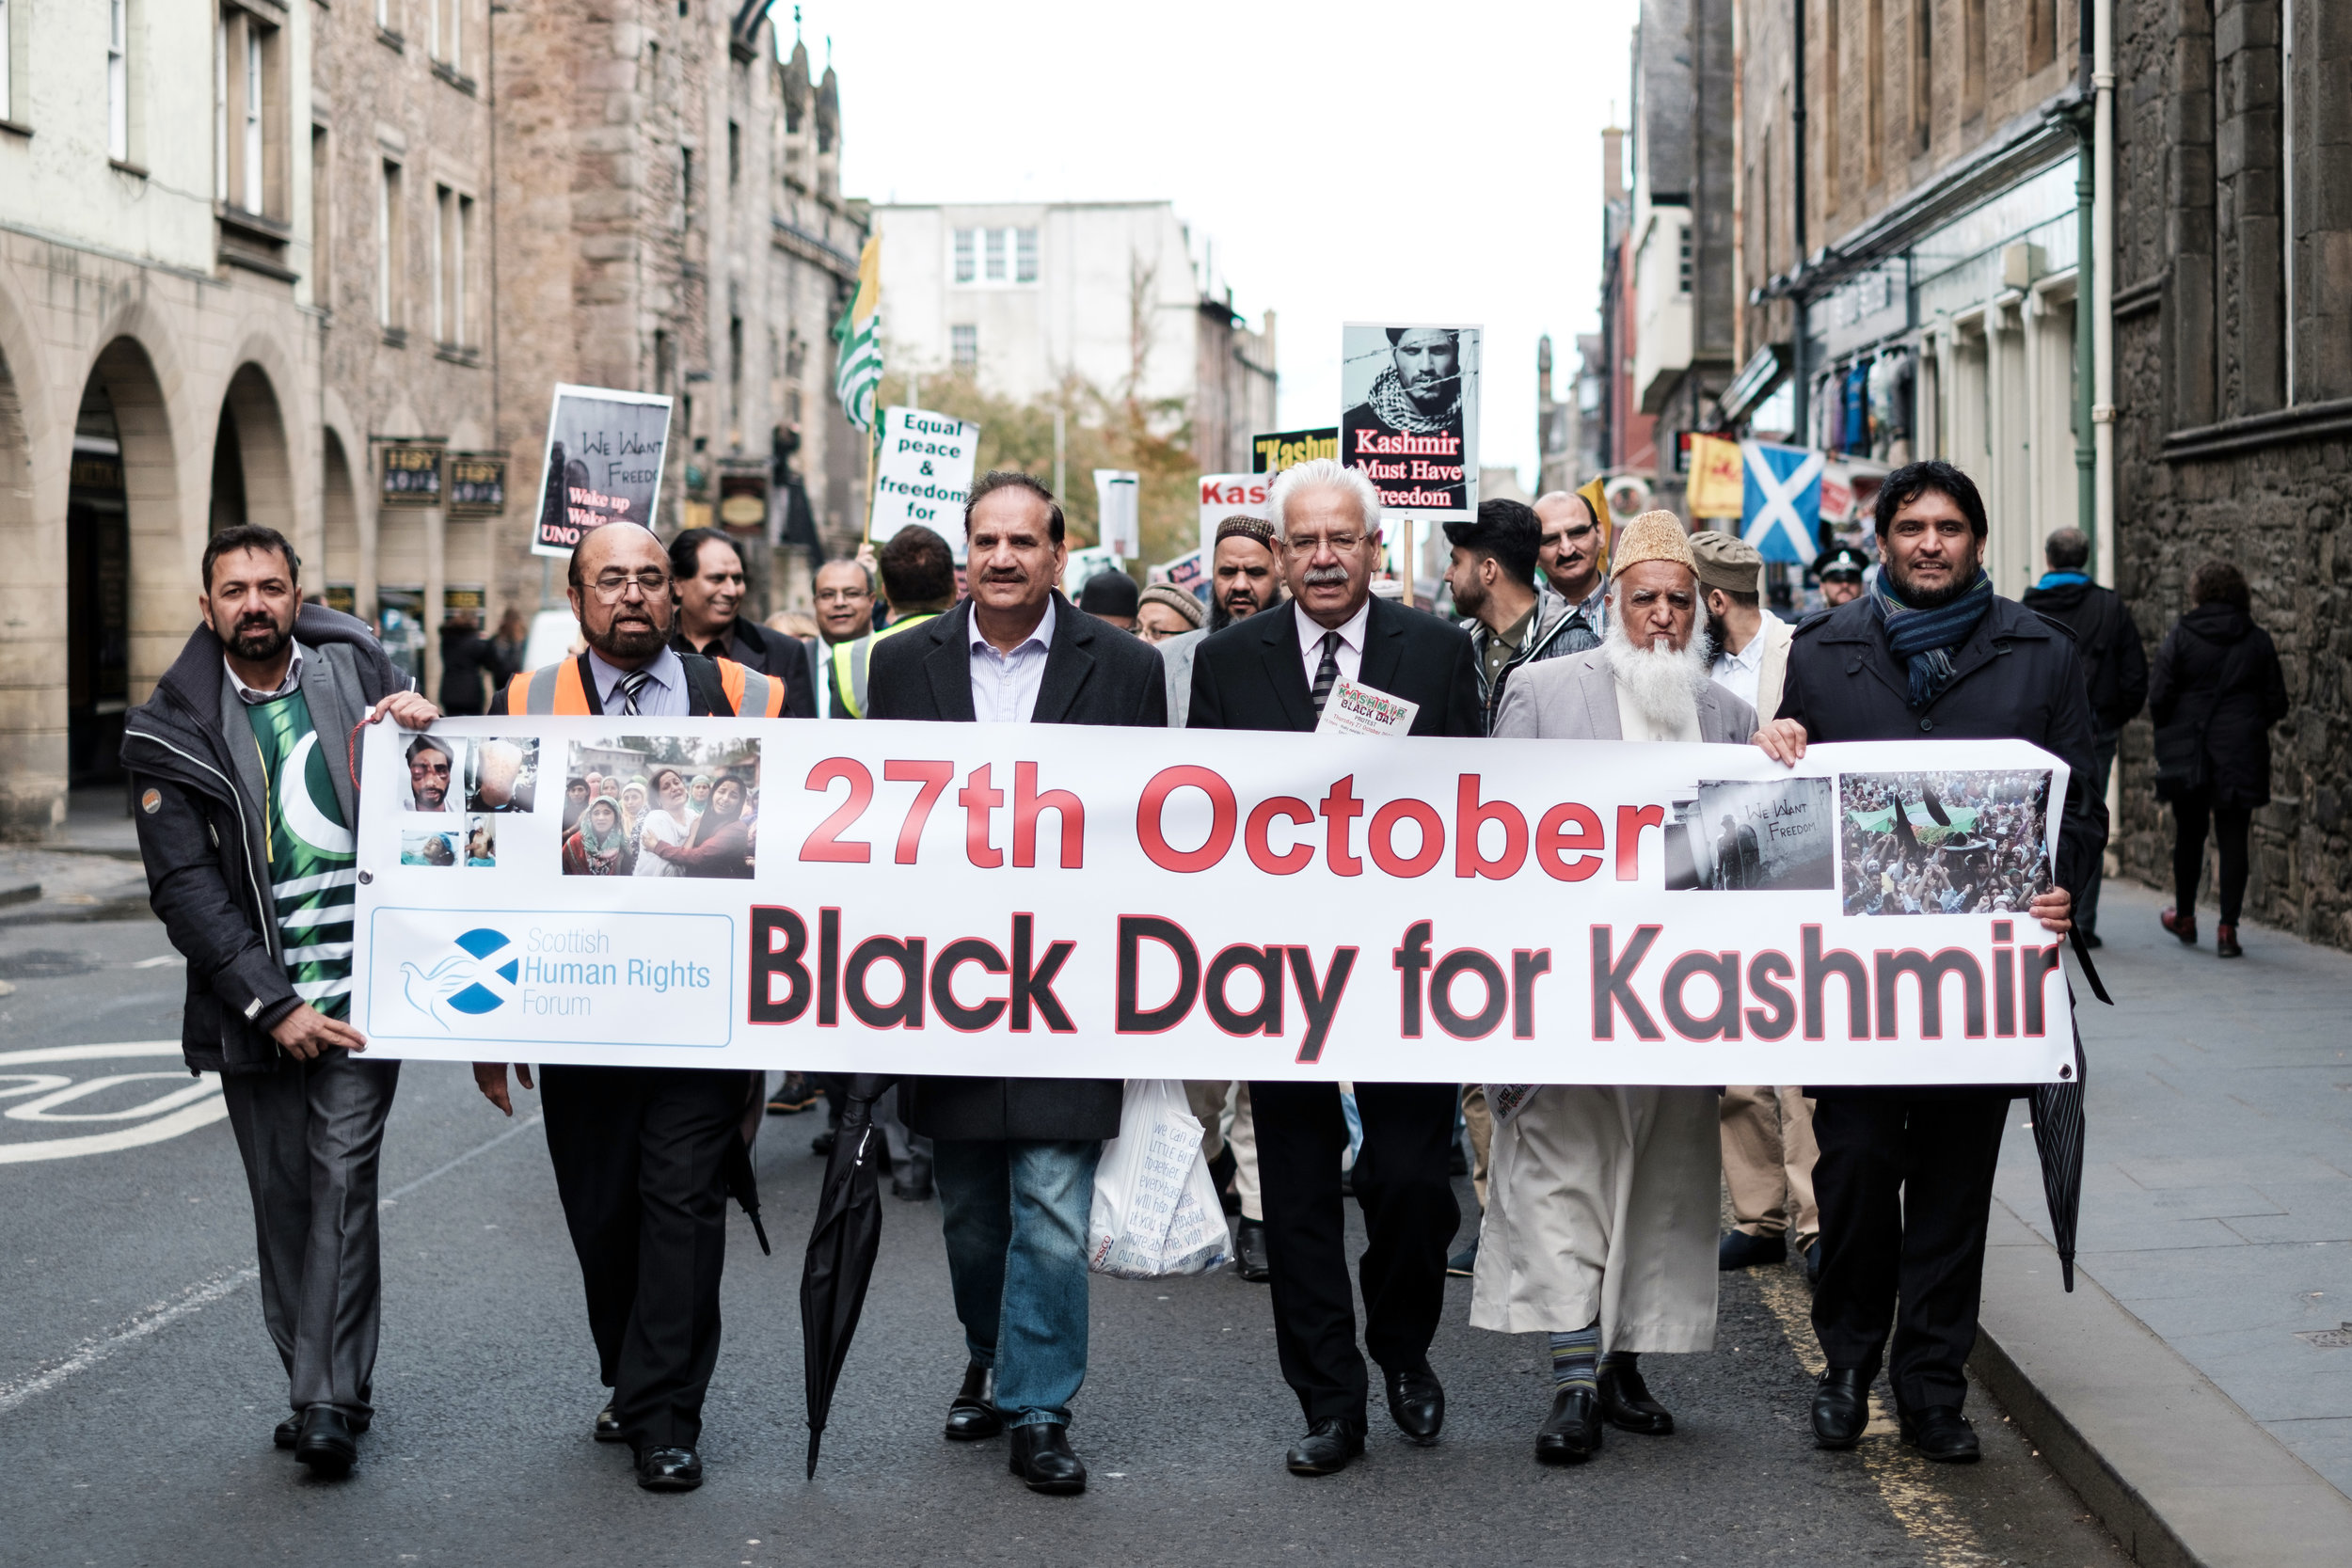 27th of October Black day for Kashmir peace march in Edinburgh Scotland